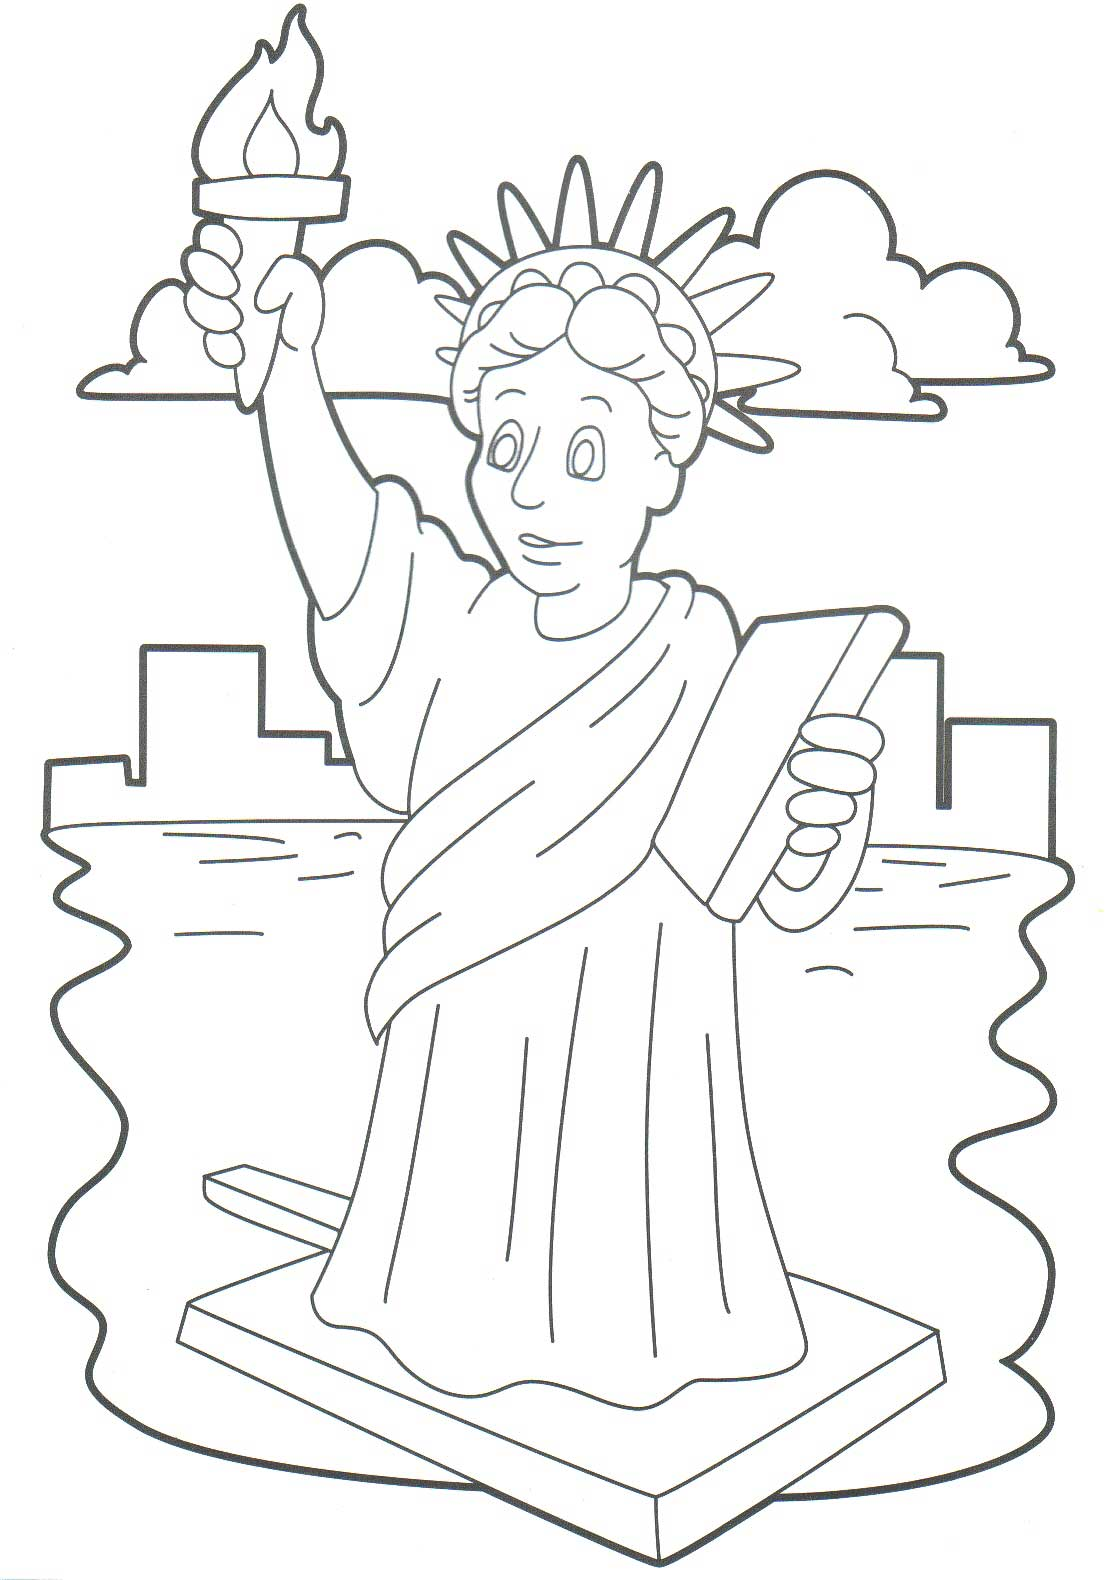 coloring pages liberty - photo#17